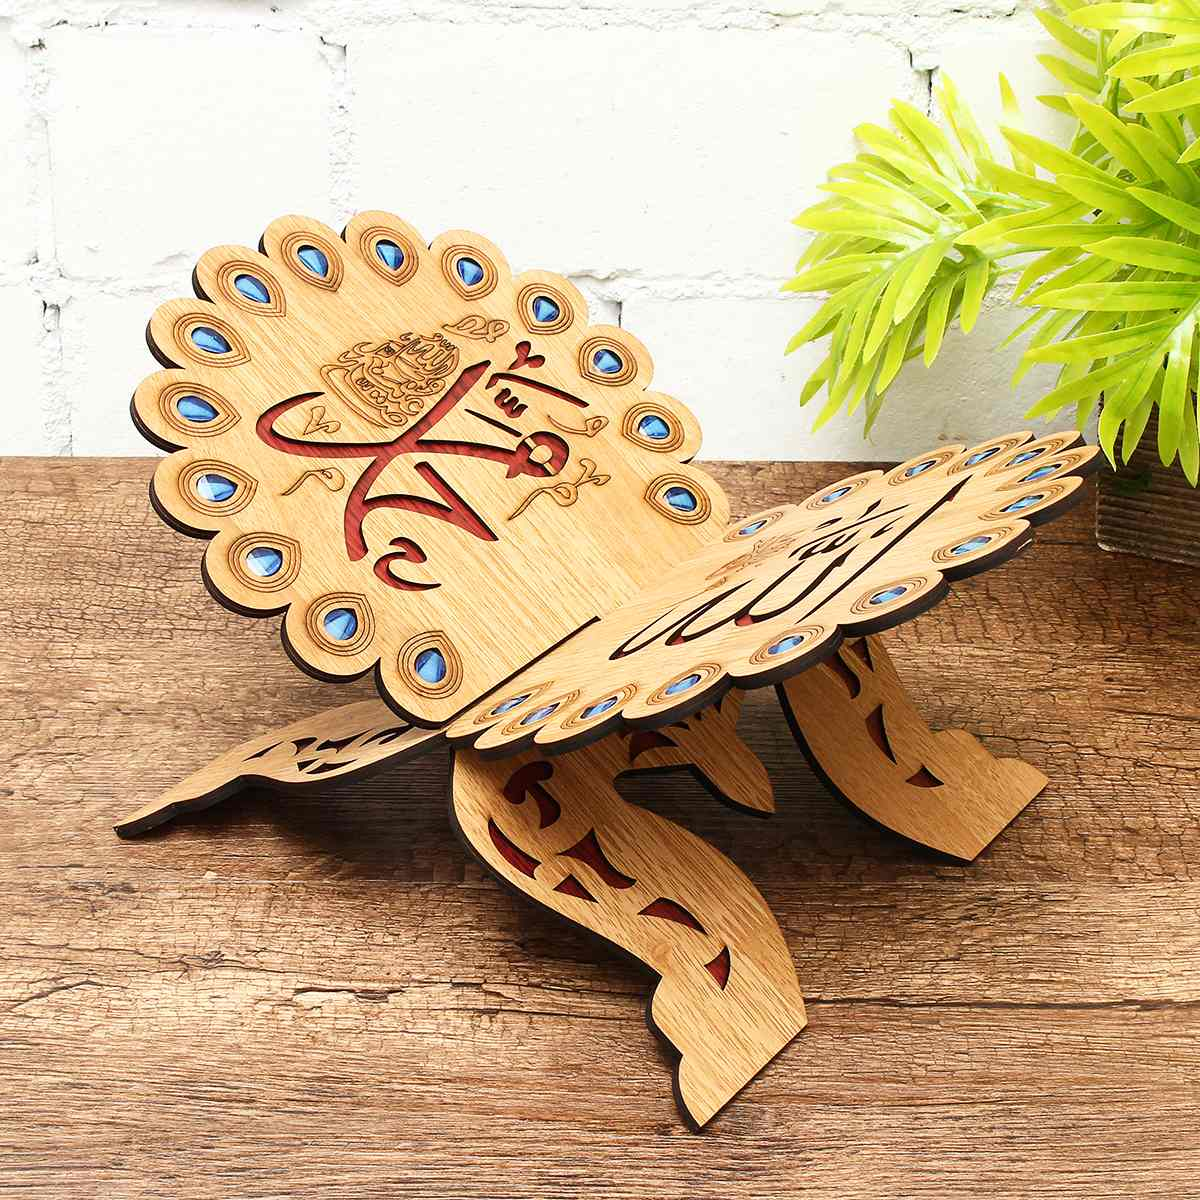 33*23/30*20cm Removable Wooden Book Stand Holder Quran Muslim Ramadan Allah Islamic Gift Handmade Wood Decor Lightweight Sale Price Bookends Office & School Supplies